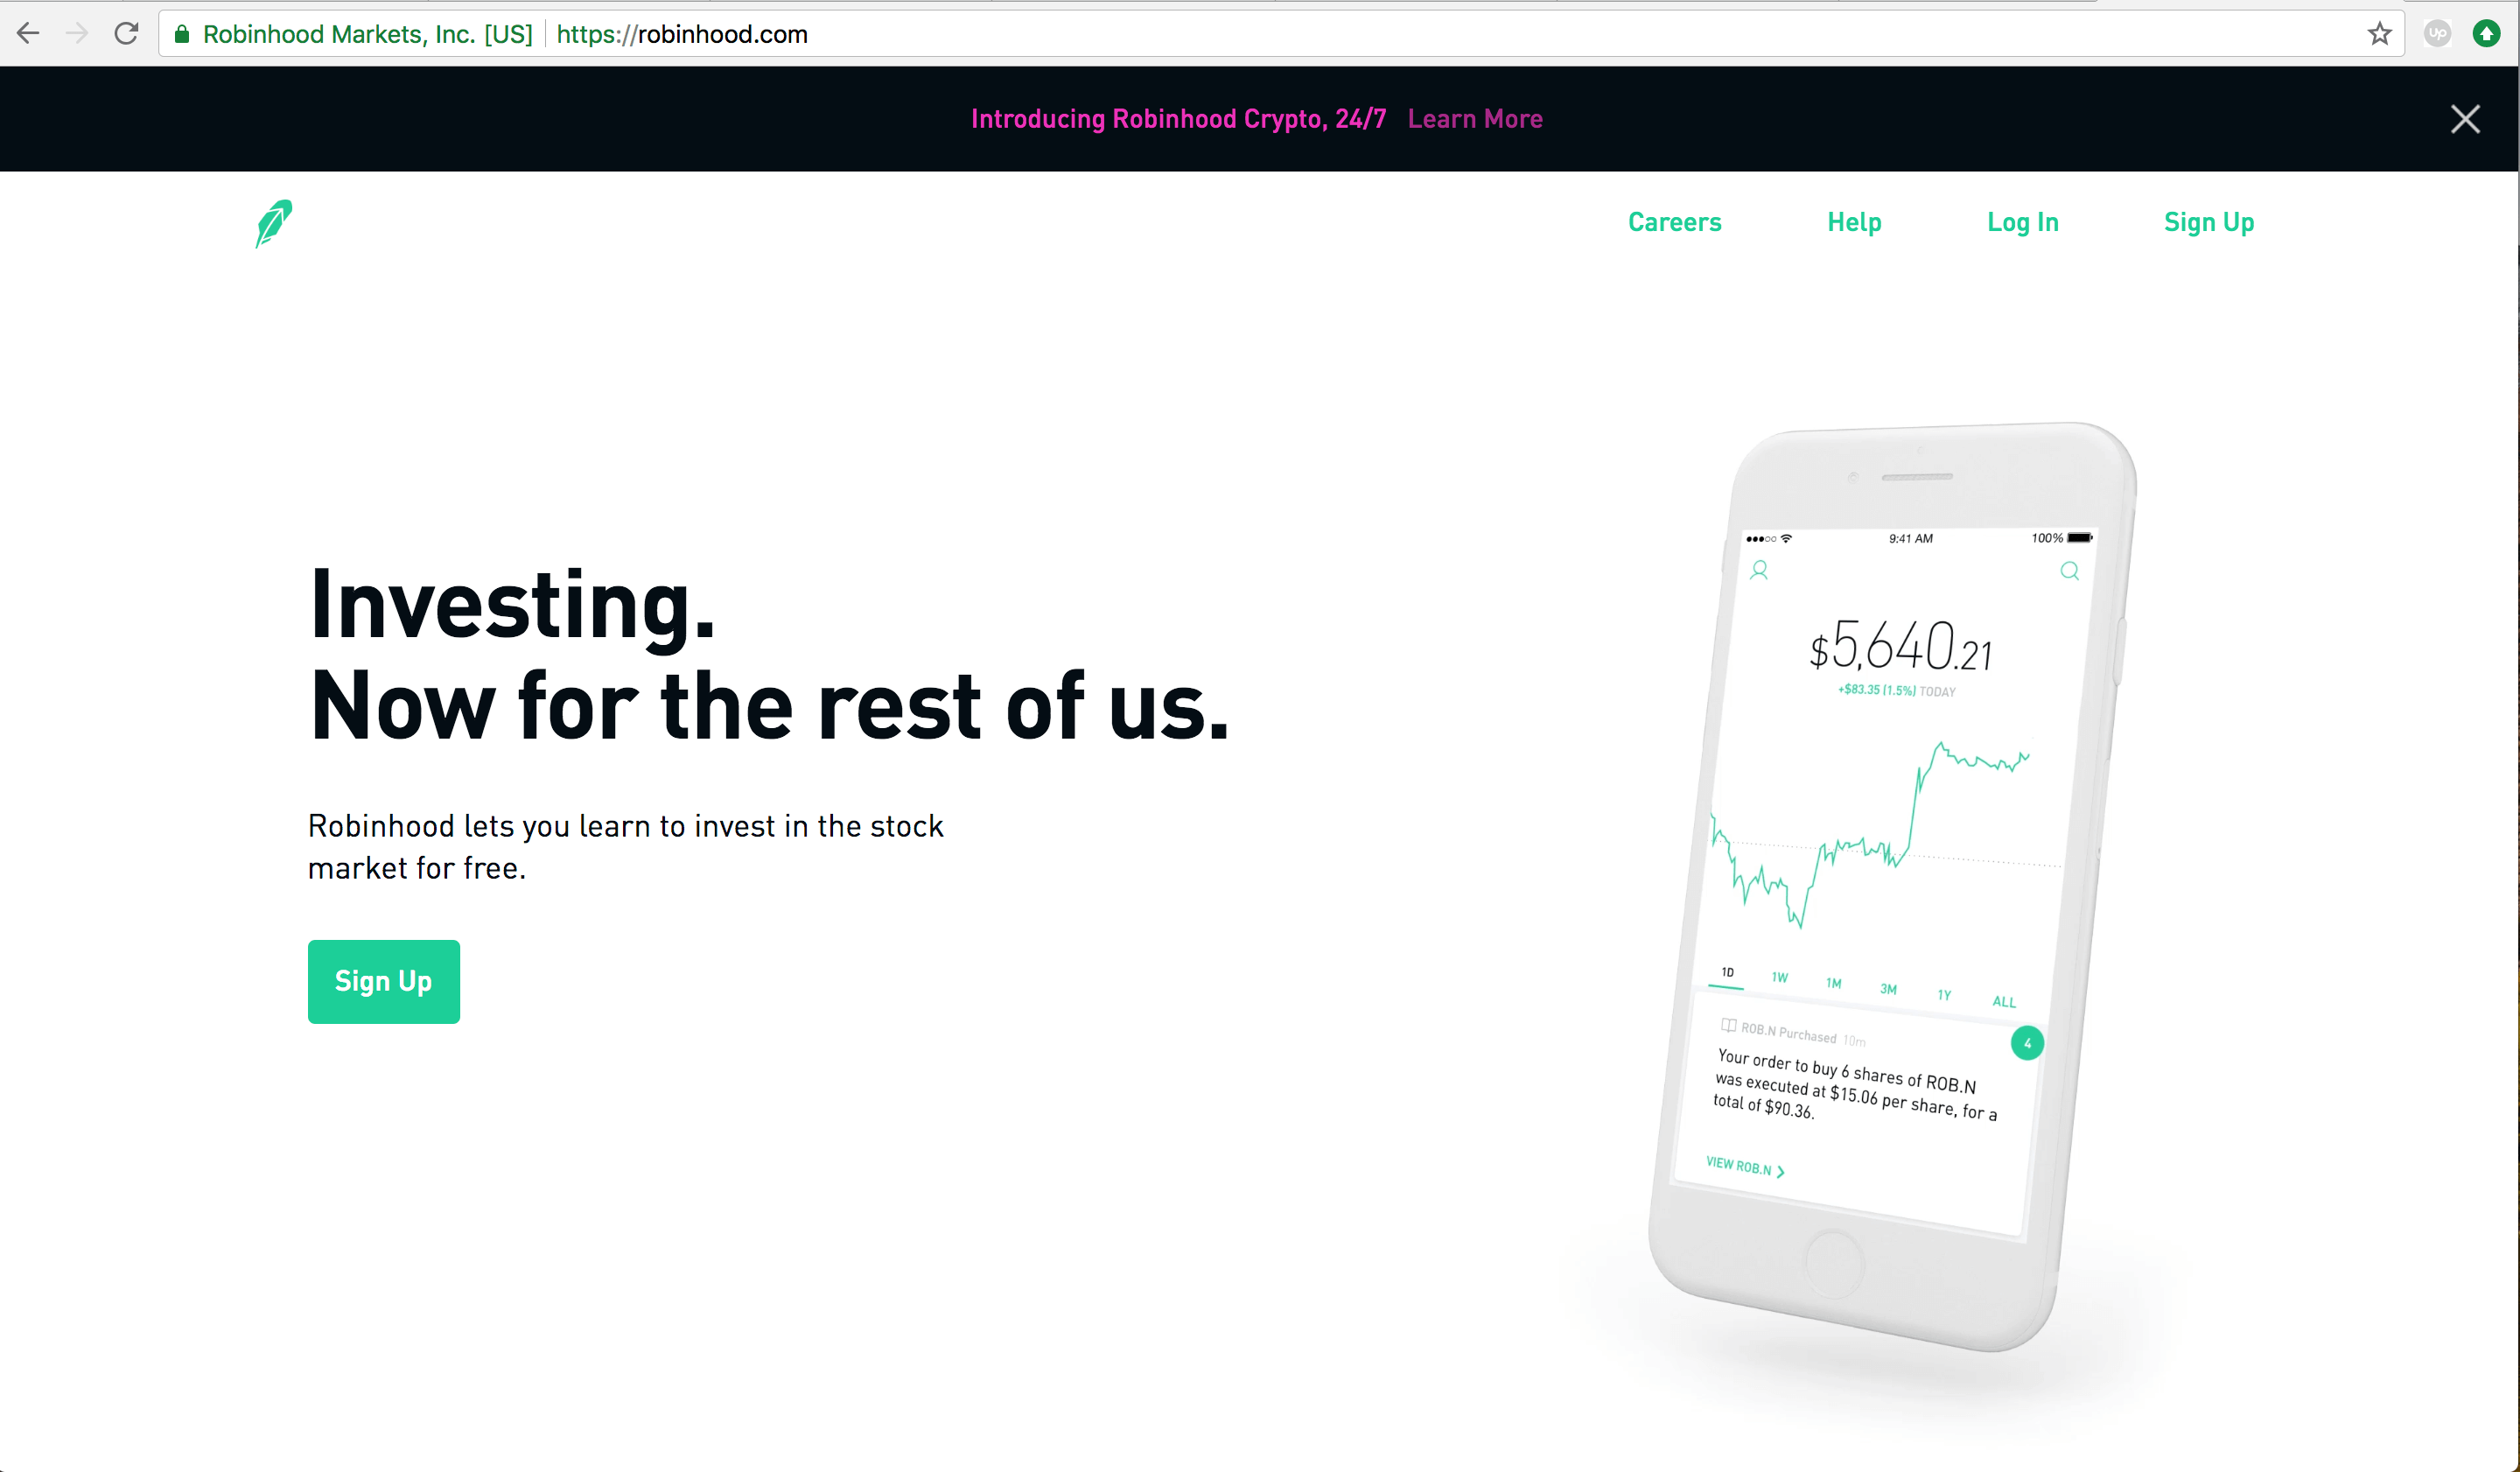 Online Promotional Code 100 Off Robinhood